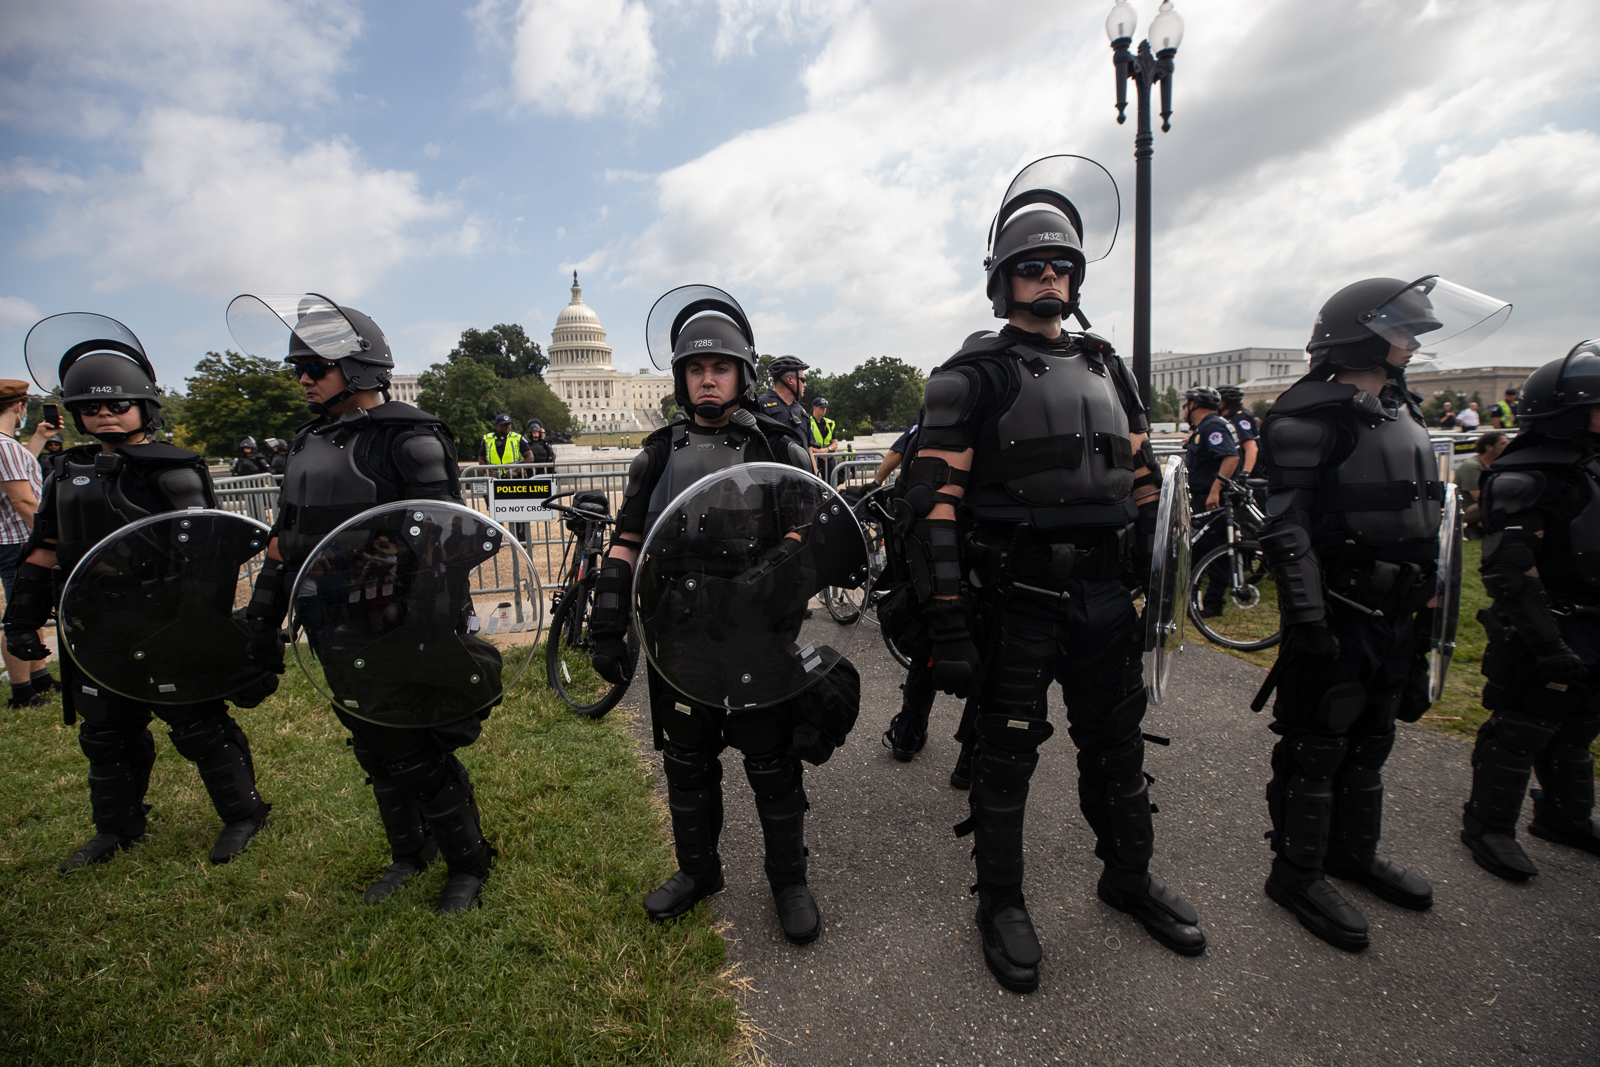 Dozens of law enforcement officicials in full riot gear were deployed to the